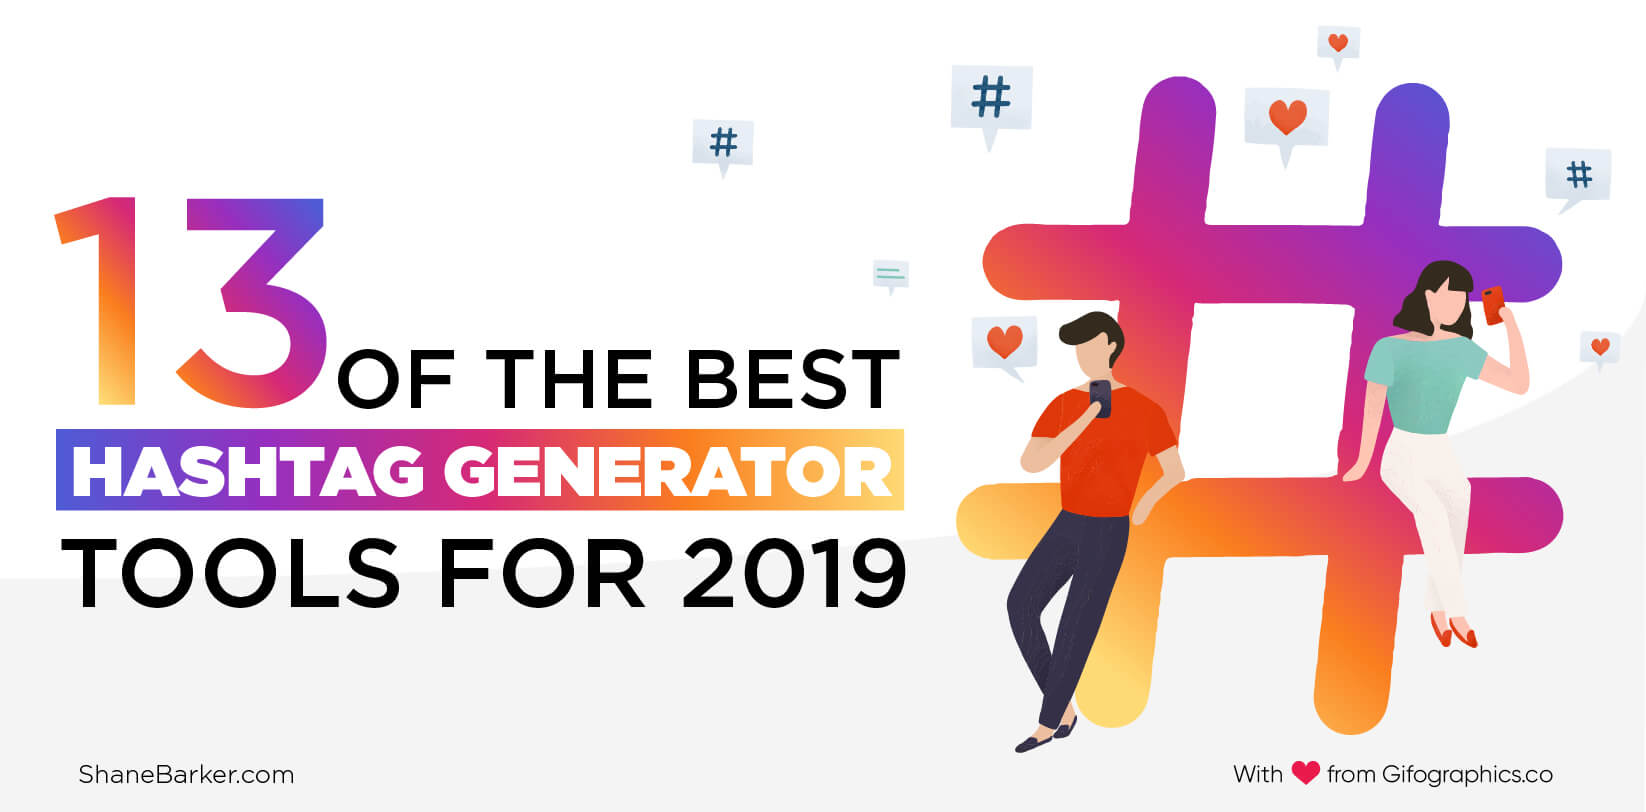 13 of the Best Hashtag Generator Tools for 2019